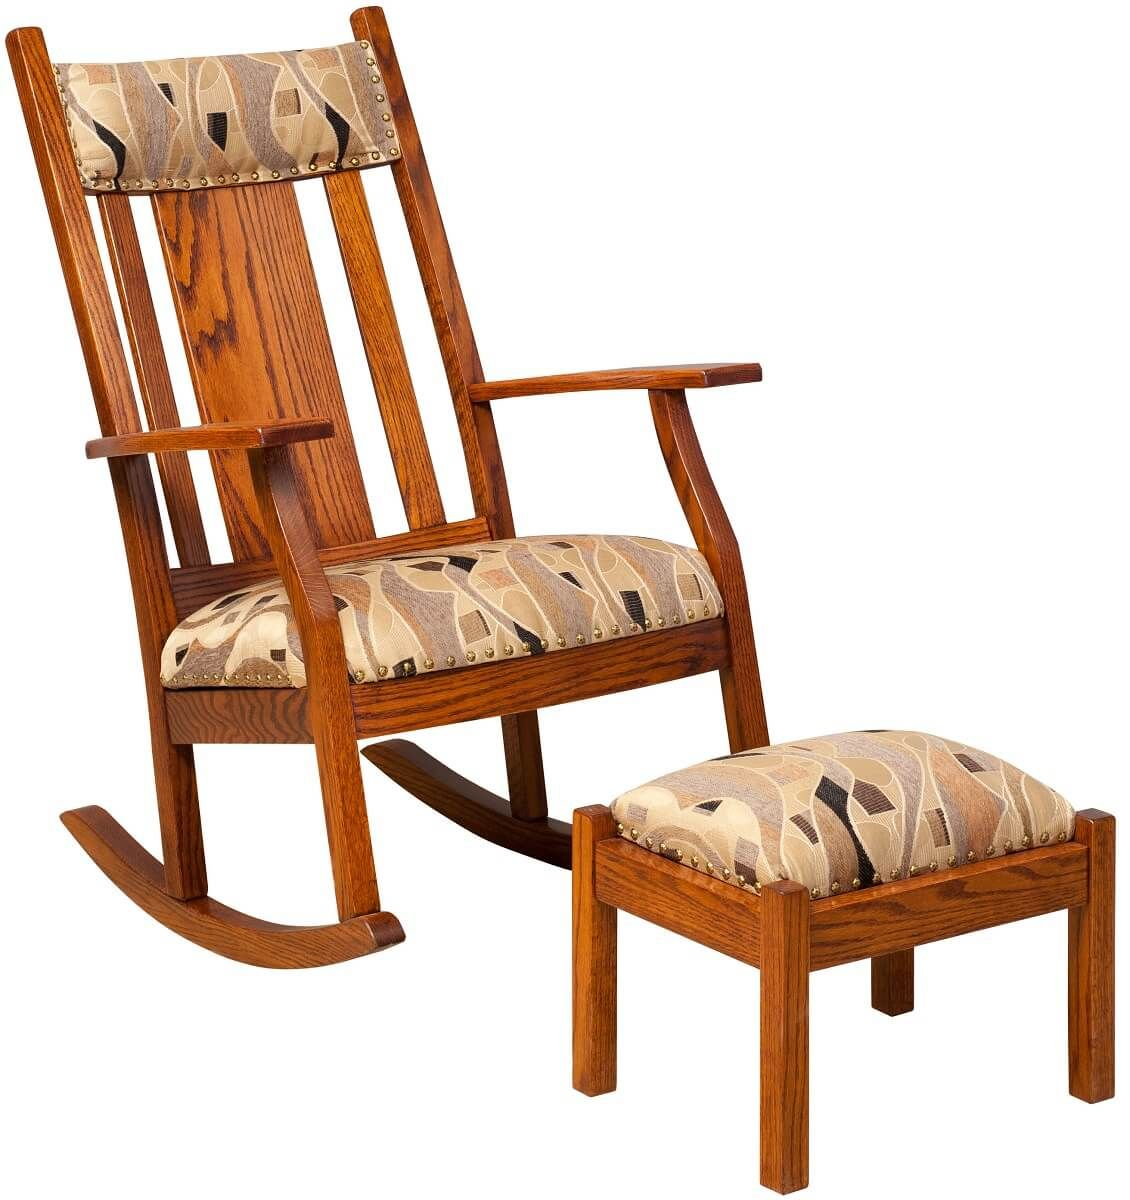 Oak Rocking Chair with Footstool